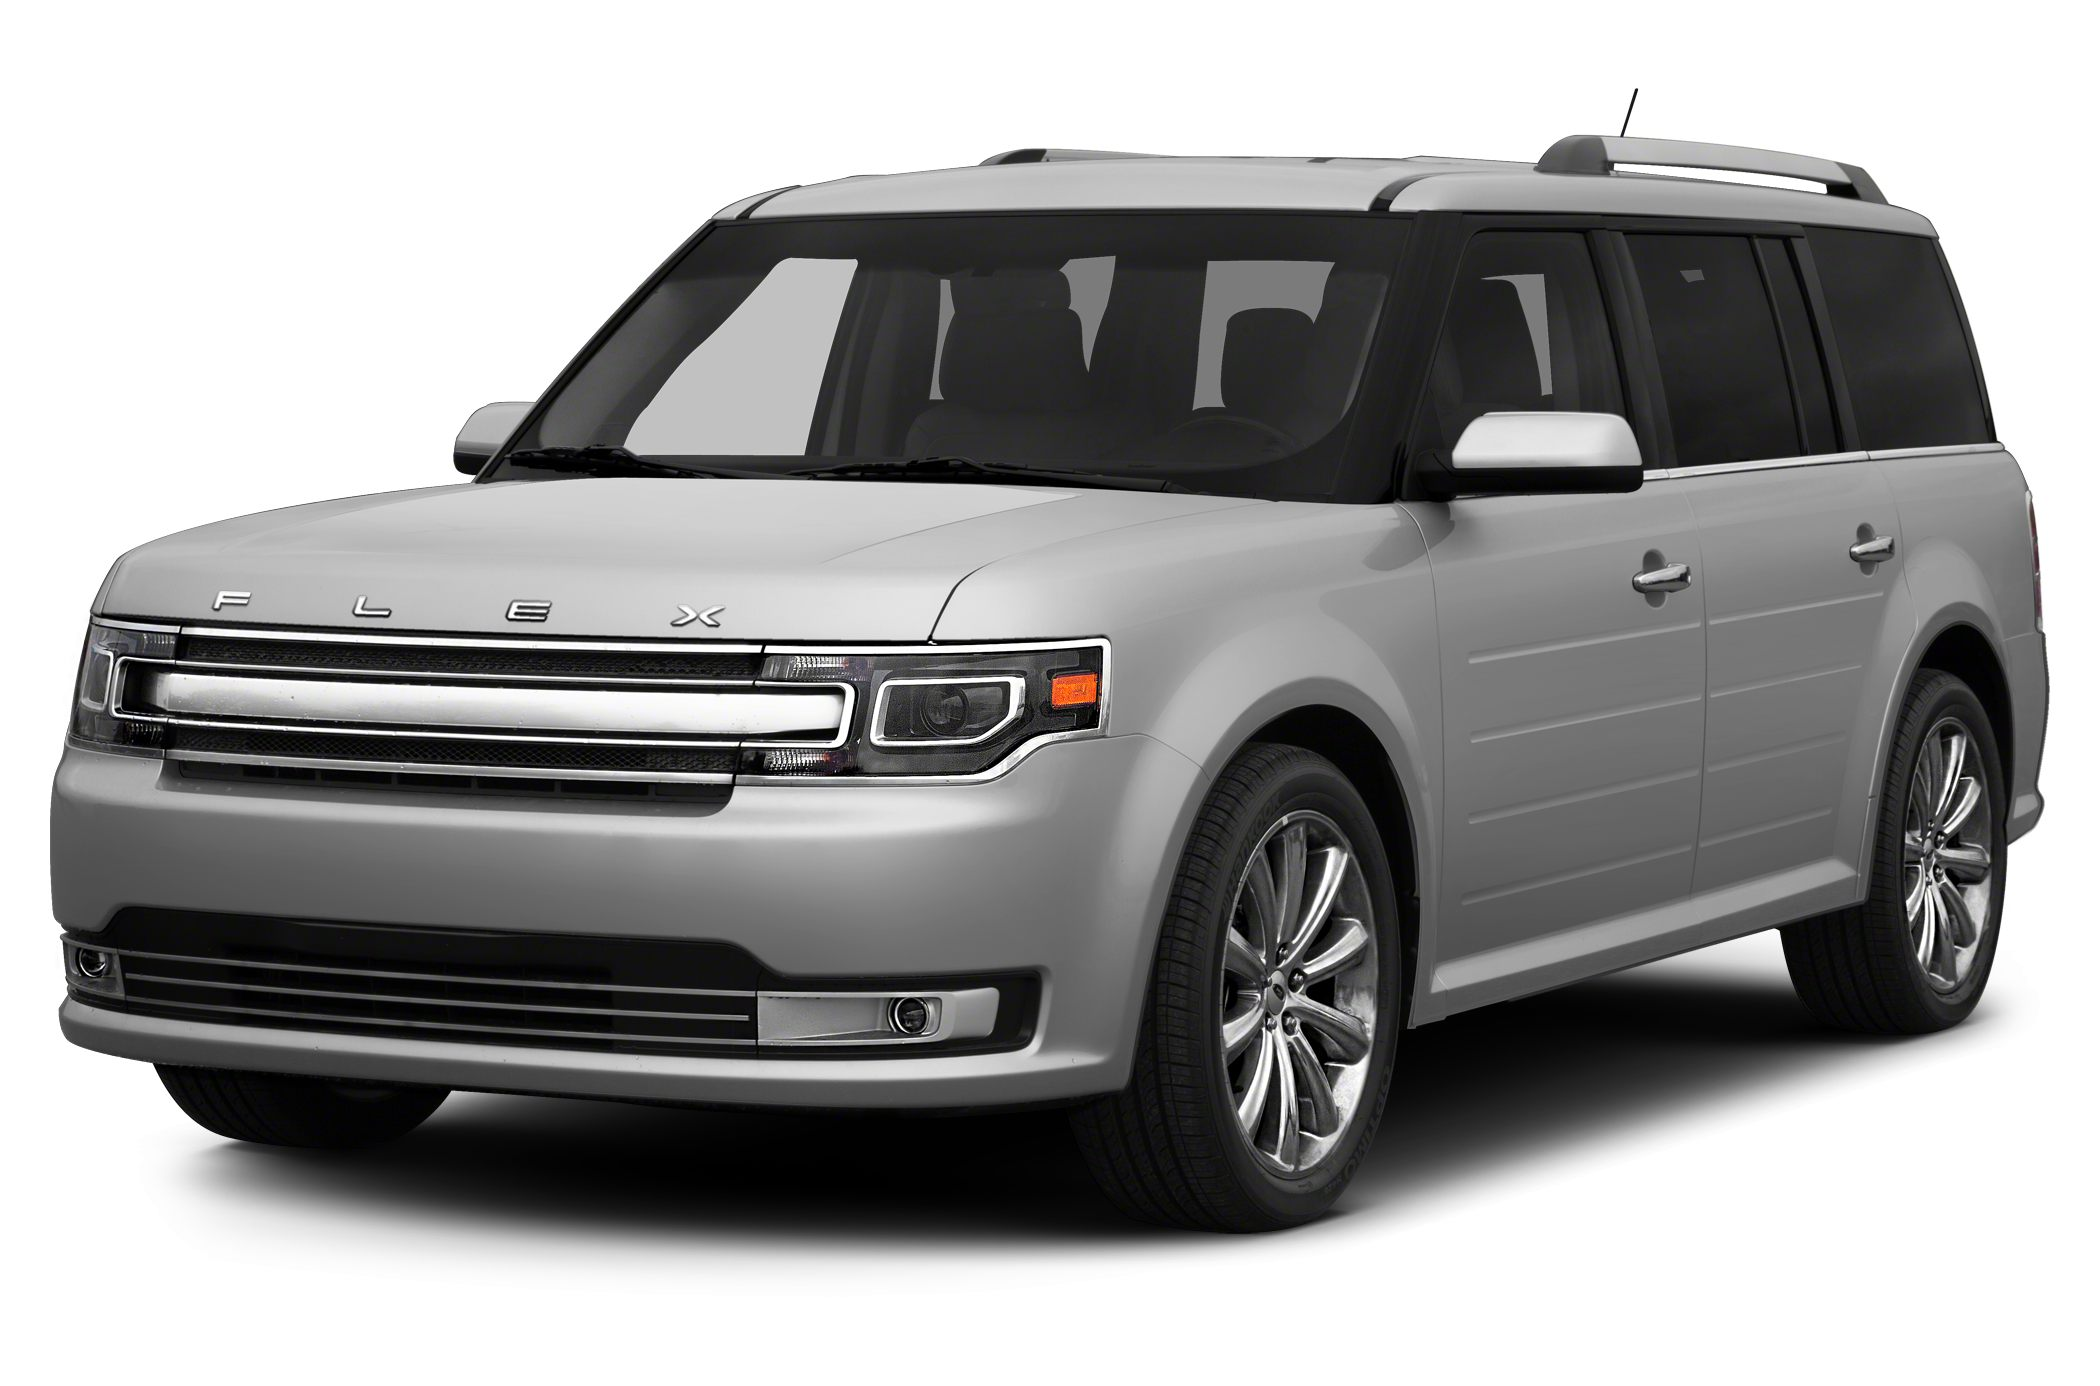 2014 Ford Flex Limited SUV for sale in East Hanover for $32,895 with 14,569 miles